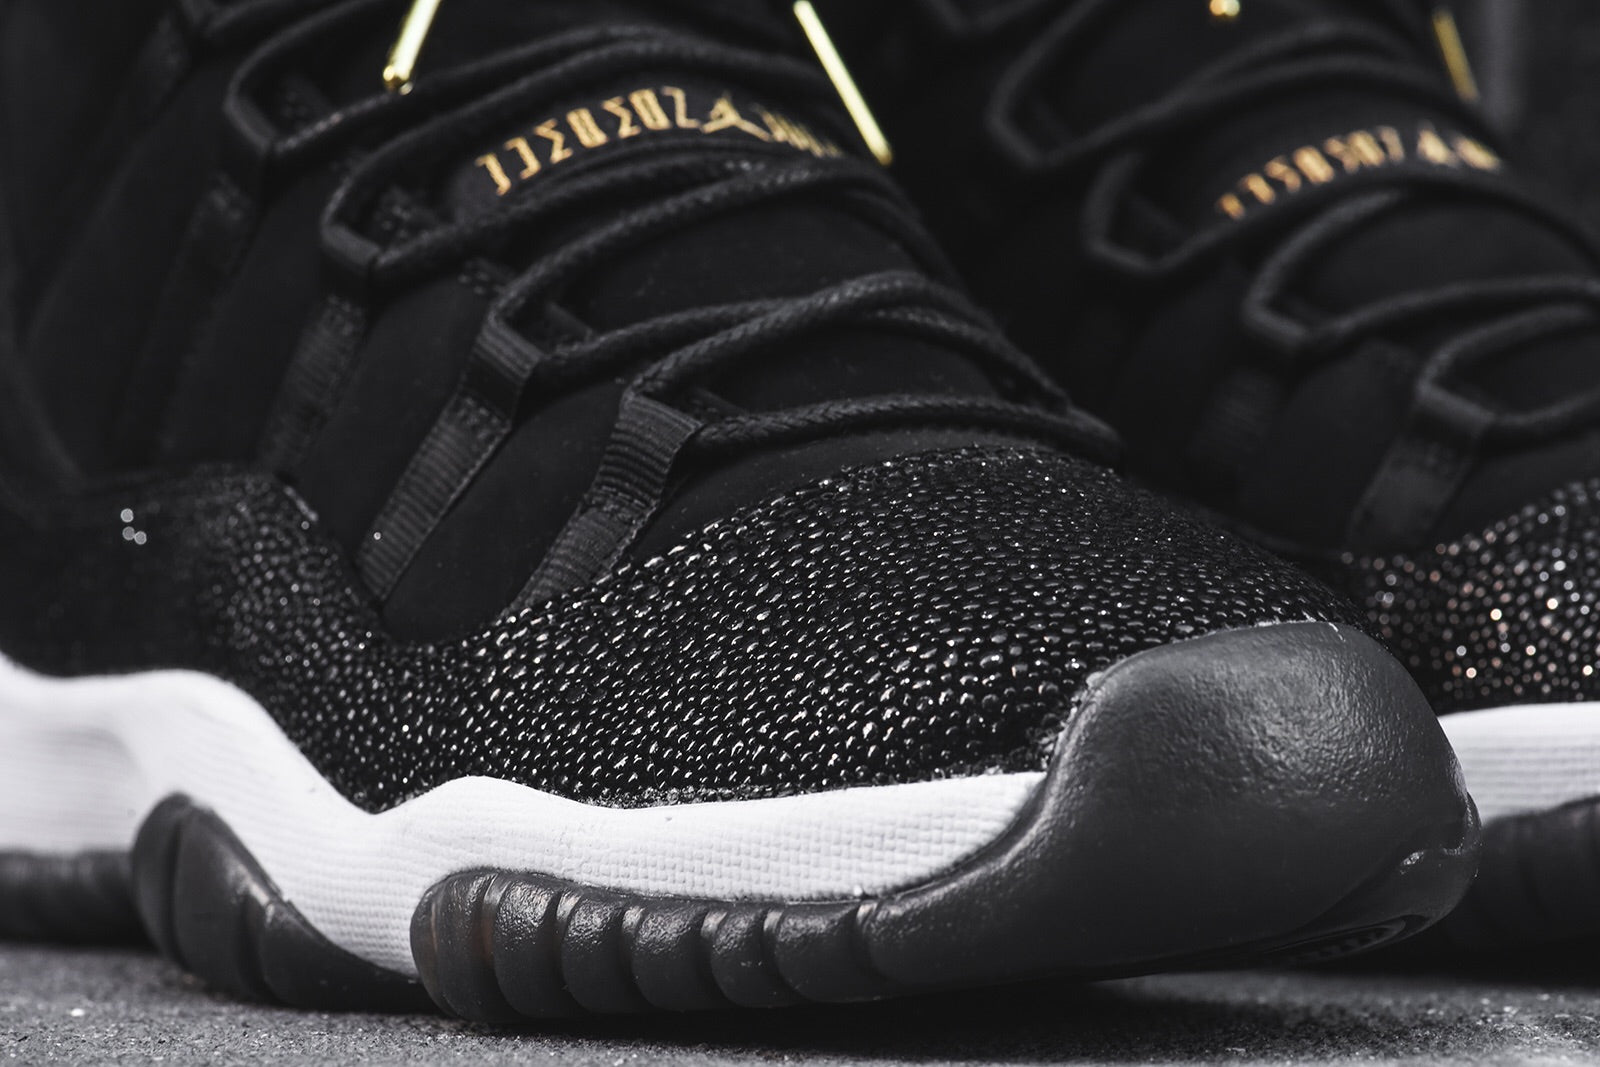 Nike GS Air Jordan 11 QS - Heiress